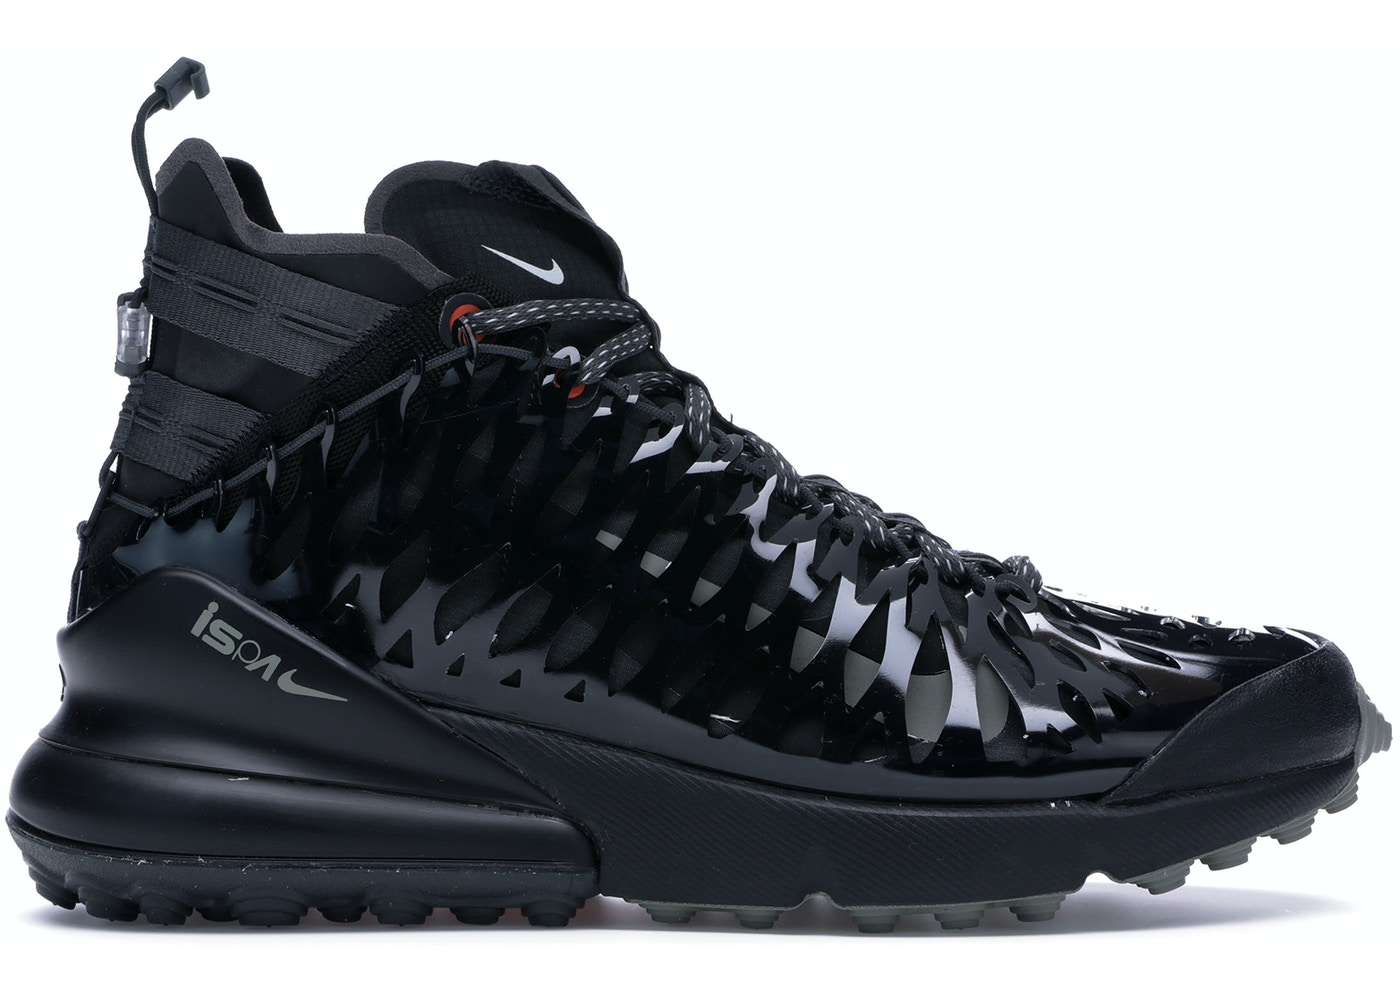 hot sale online 6f109 0c334 Buy Nike Air Max 270 Shoes & Deadstock Sneakers